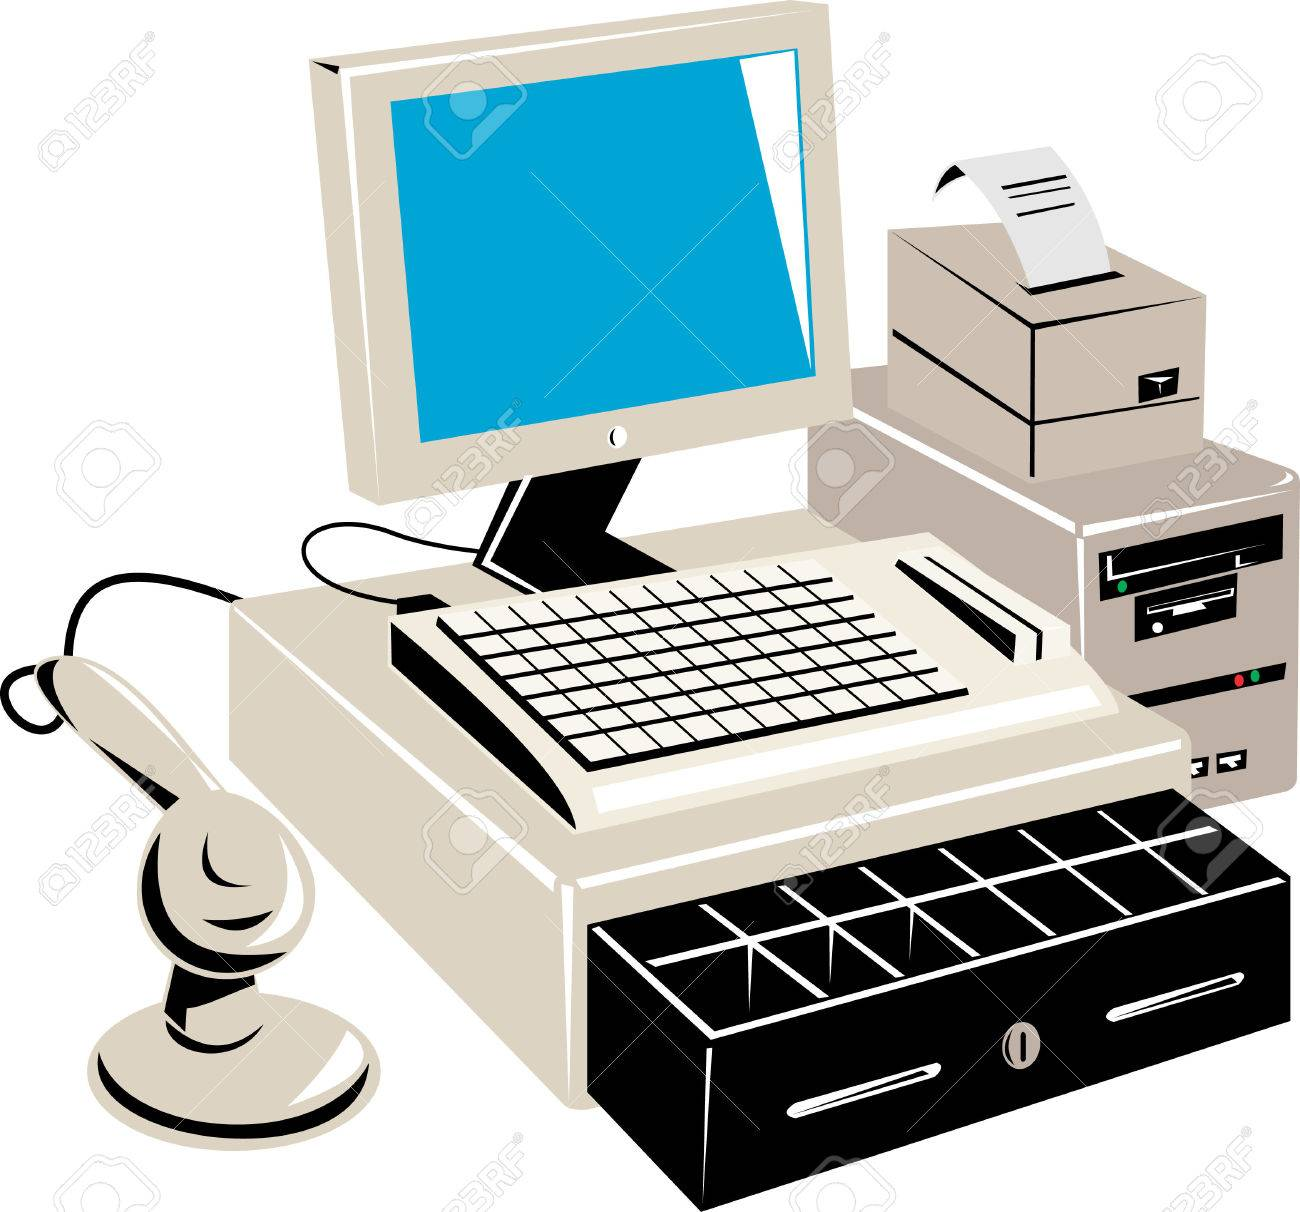 PC based retail point of sale system Stock Vector - 4519259